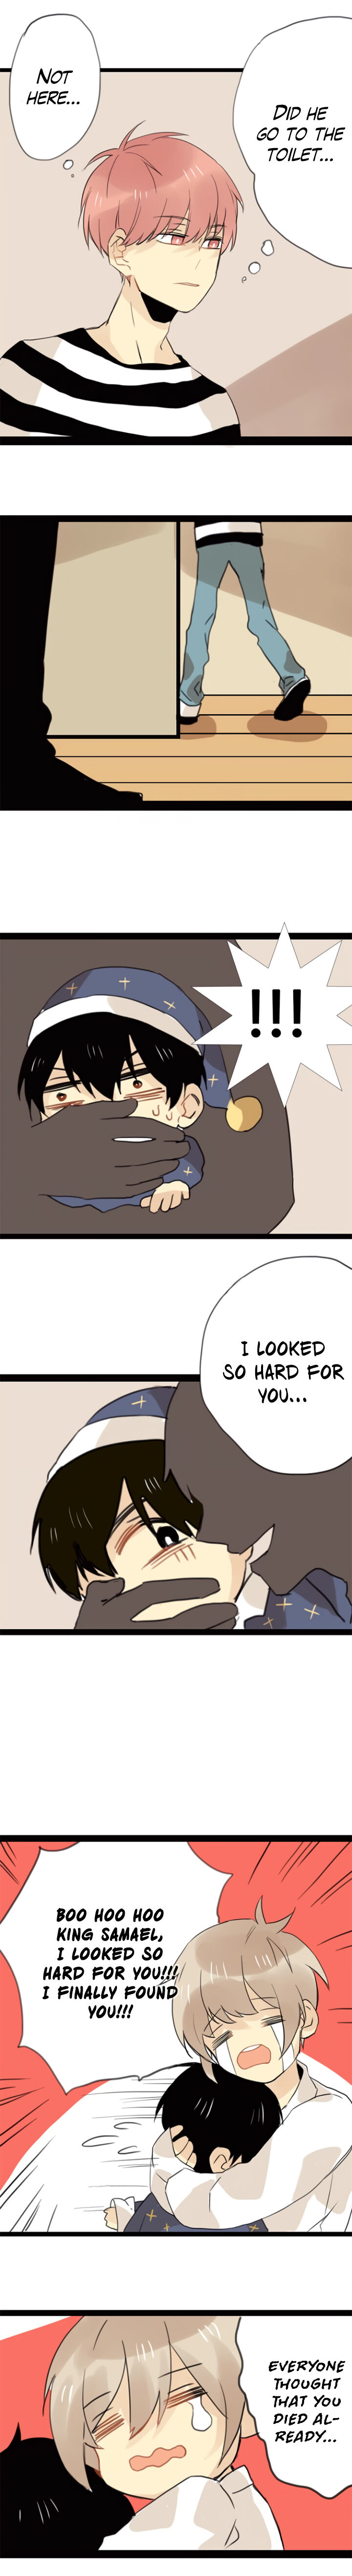 Demon King, your big brother wants you home for dinner. - chapter 17 - #2